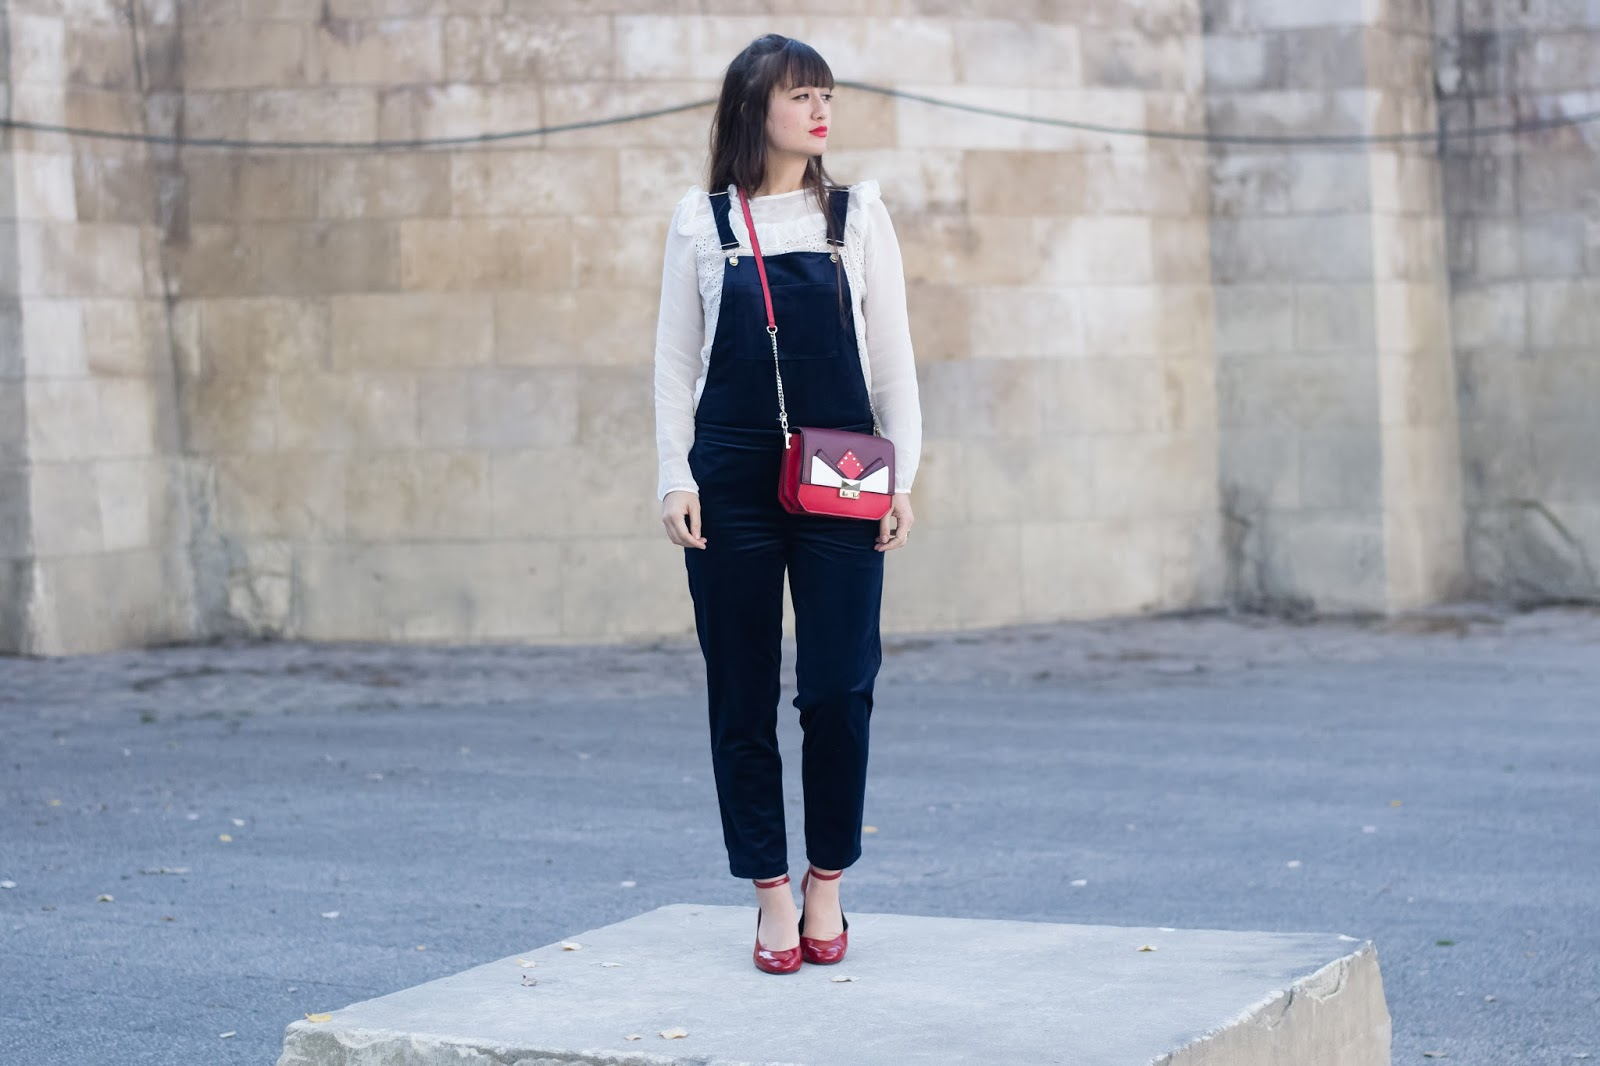 meetmeinparee, paris, style, look, blogger, fashion, streetstyle, mode, Parisian fashion blogger